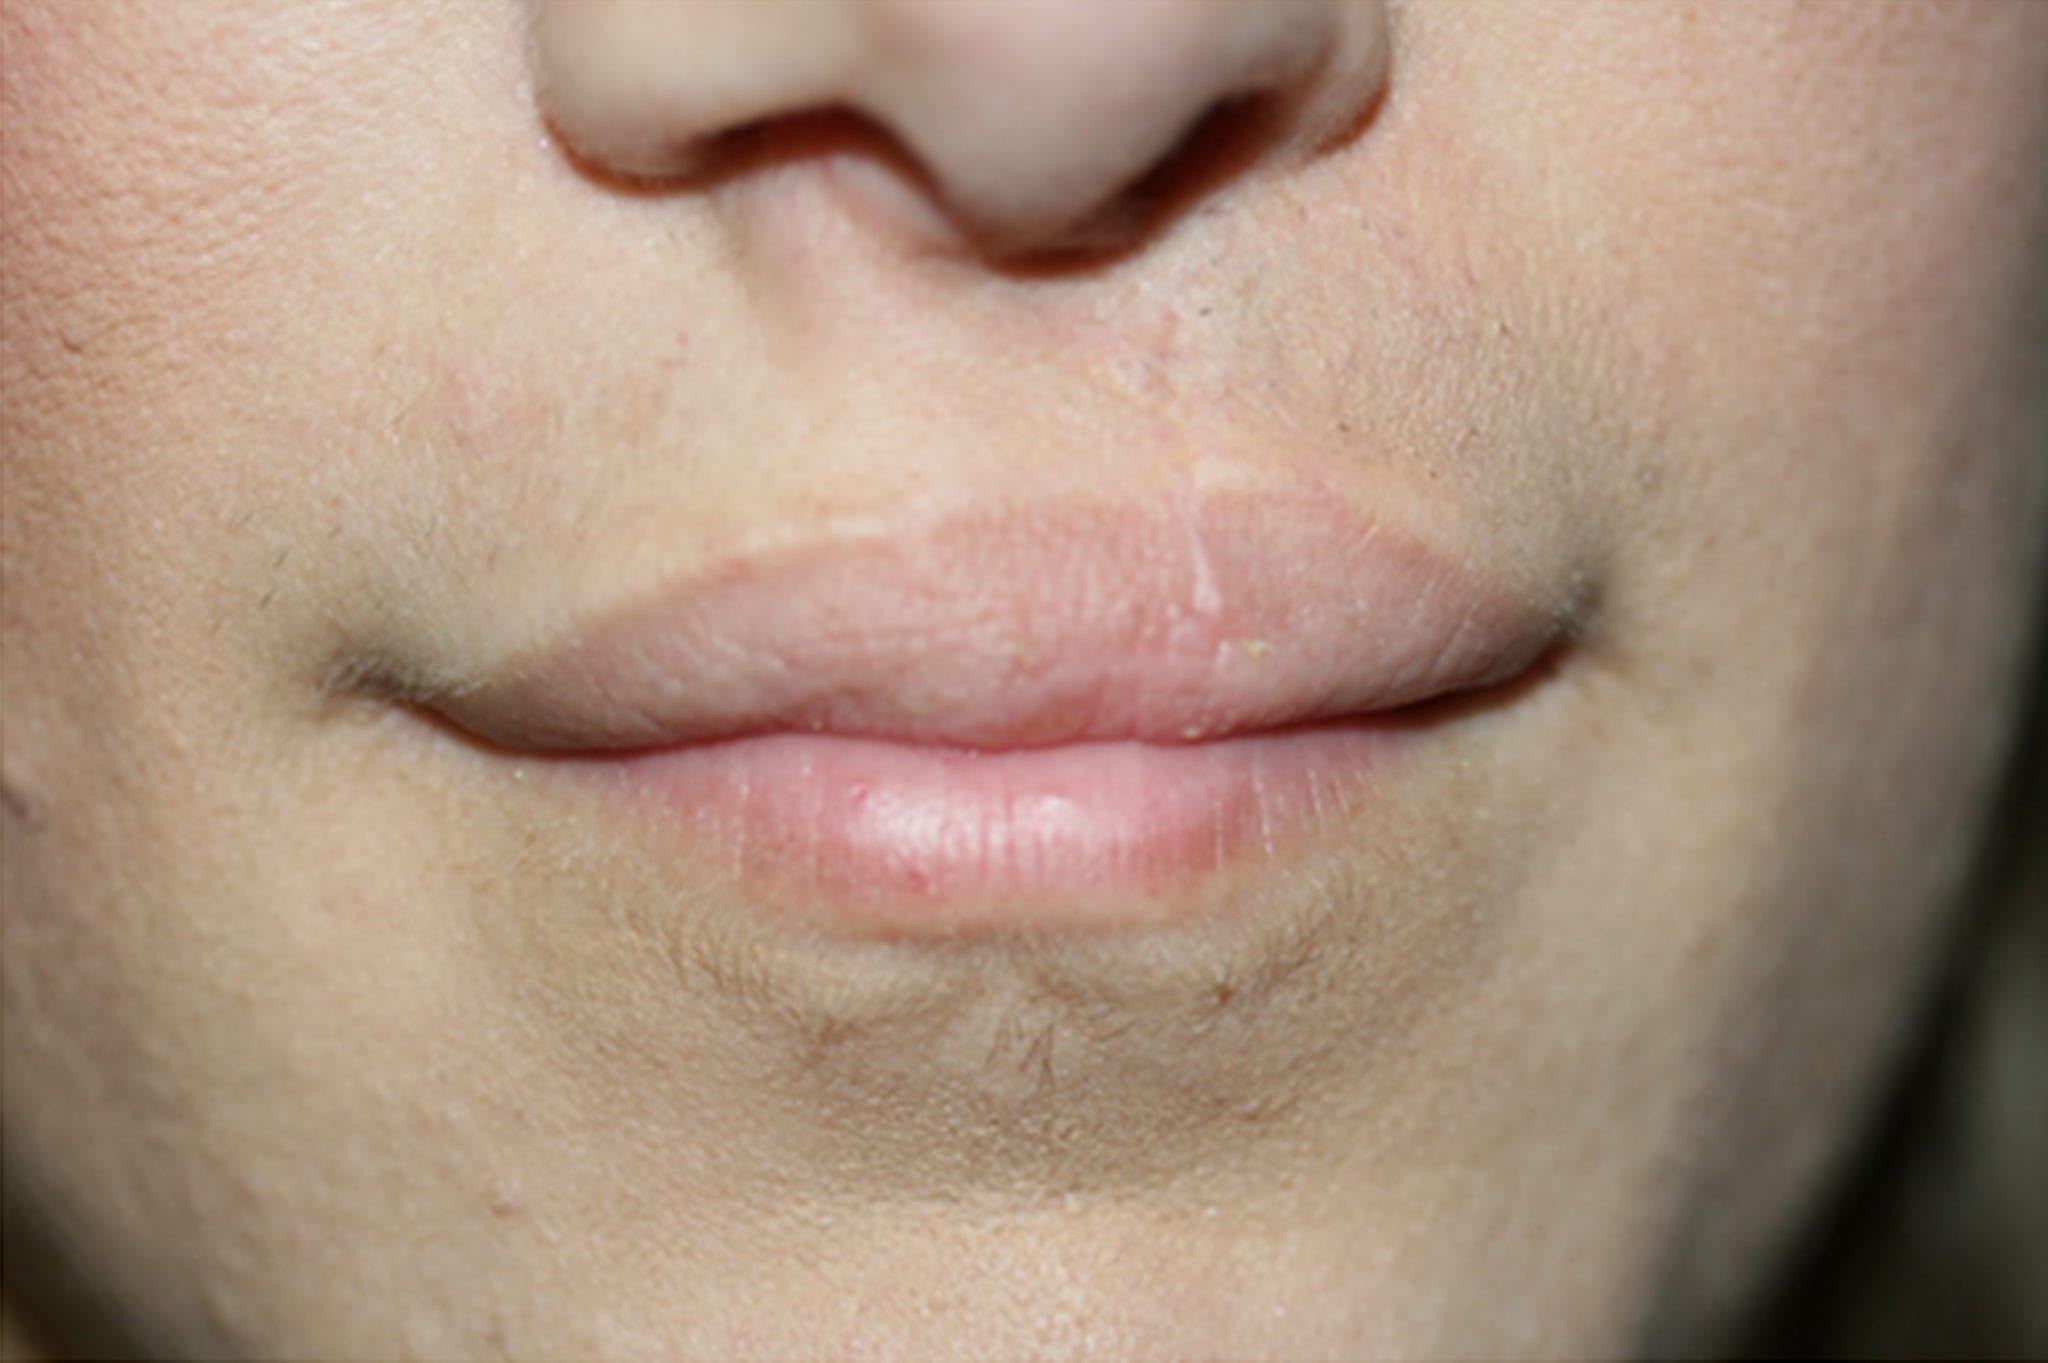 cleft pellet cleft palet cleft pallet cleft pelet lip discoloration, permanent lipstick lip camouflage lip whitenening, dark lips pink lips permanent lips full lips beverly hills agoura hills medical micropigmentation permanent makeup